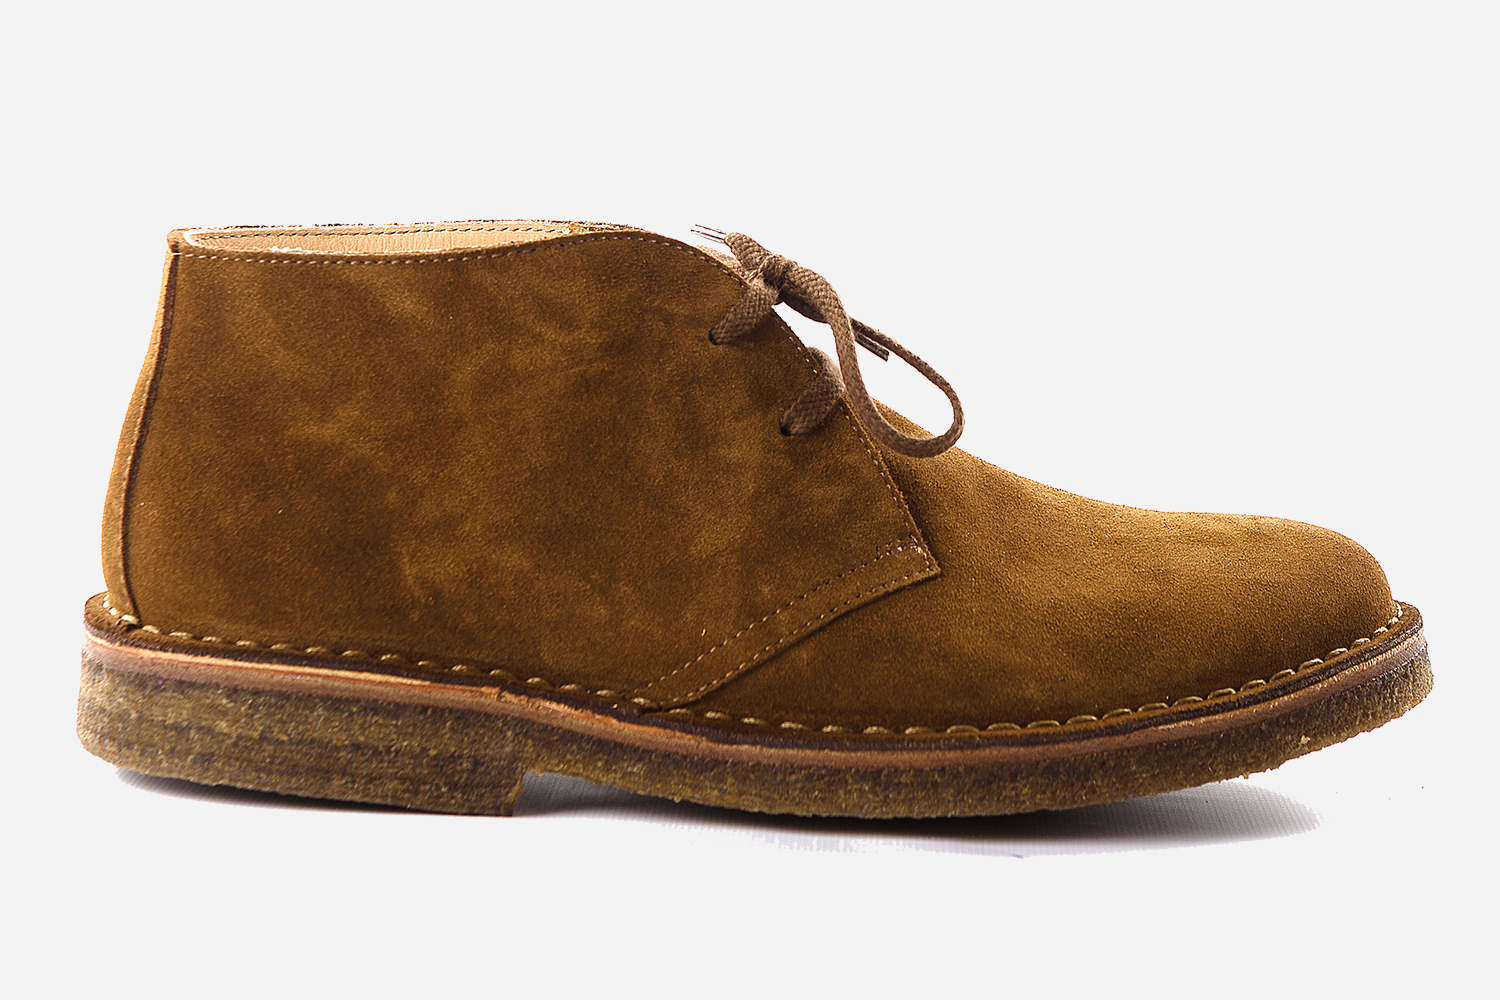 Astorflex Greenflex Desert Boots on Sale on Huckberry